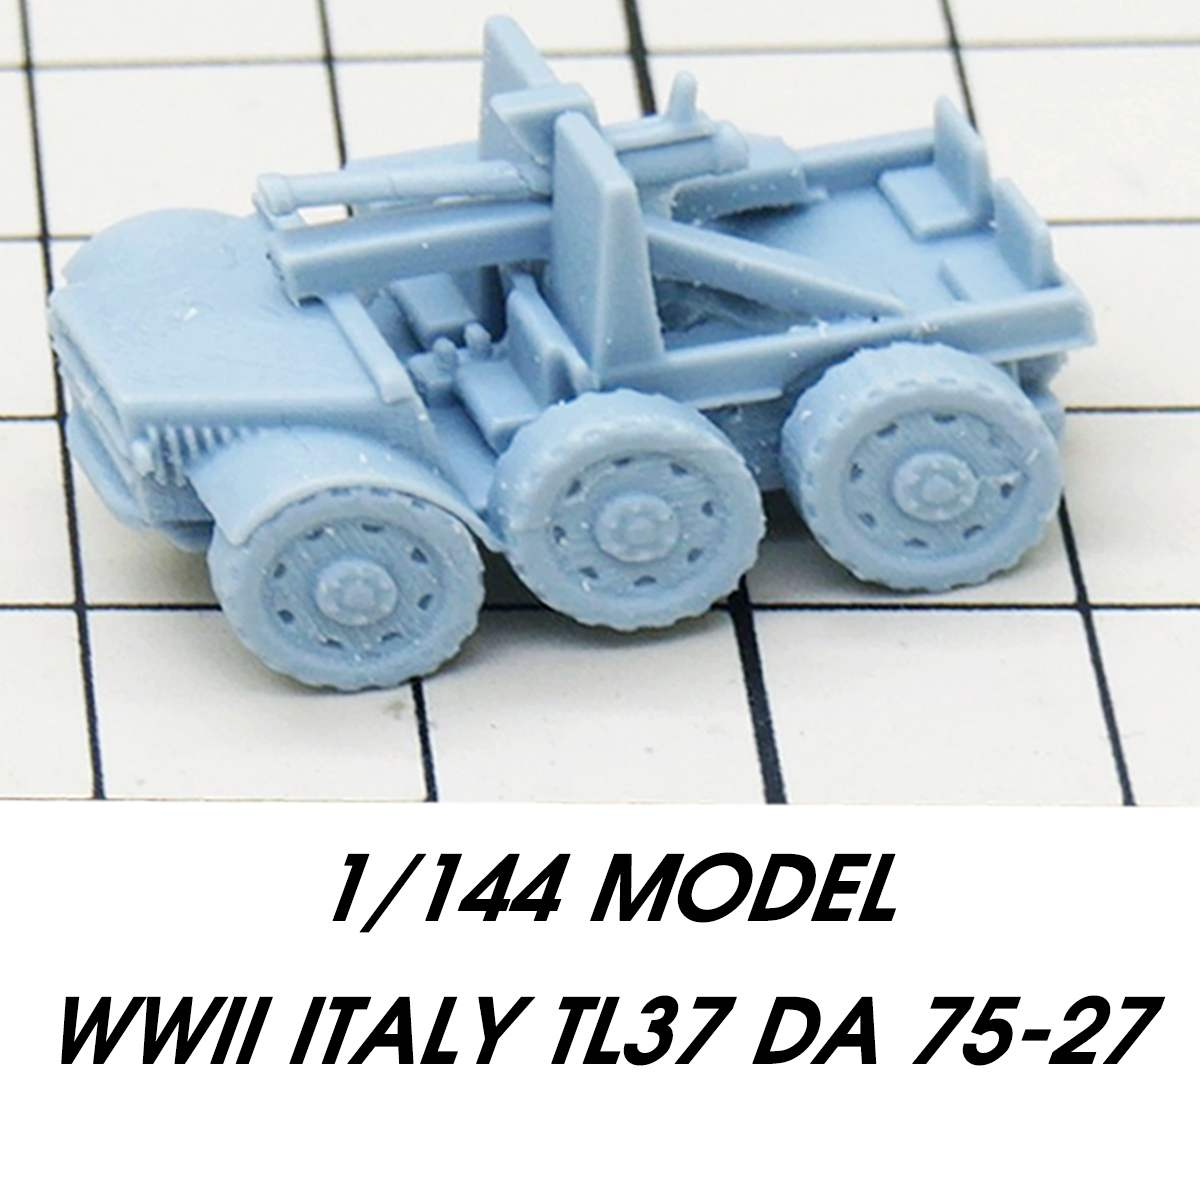 Beautiful 1/144 Diy Resin Figure Wwii Italy Armored Vehicles Car Panzer Tank Model Kits Sand Table Model Building Kits Kids Gift 3d Toys Toys & Hobbies